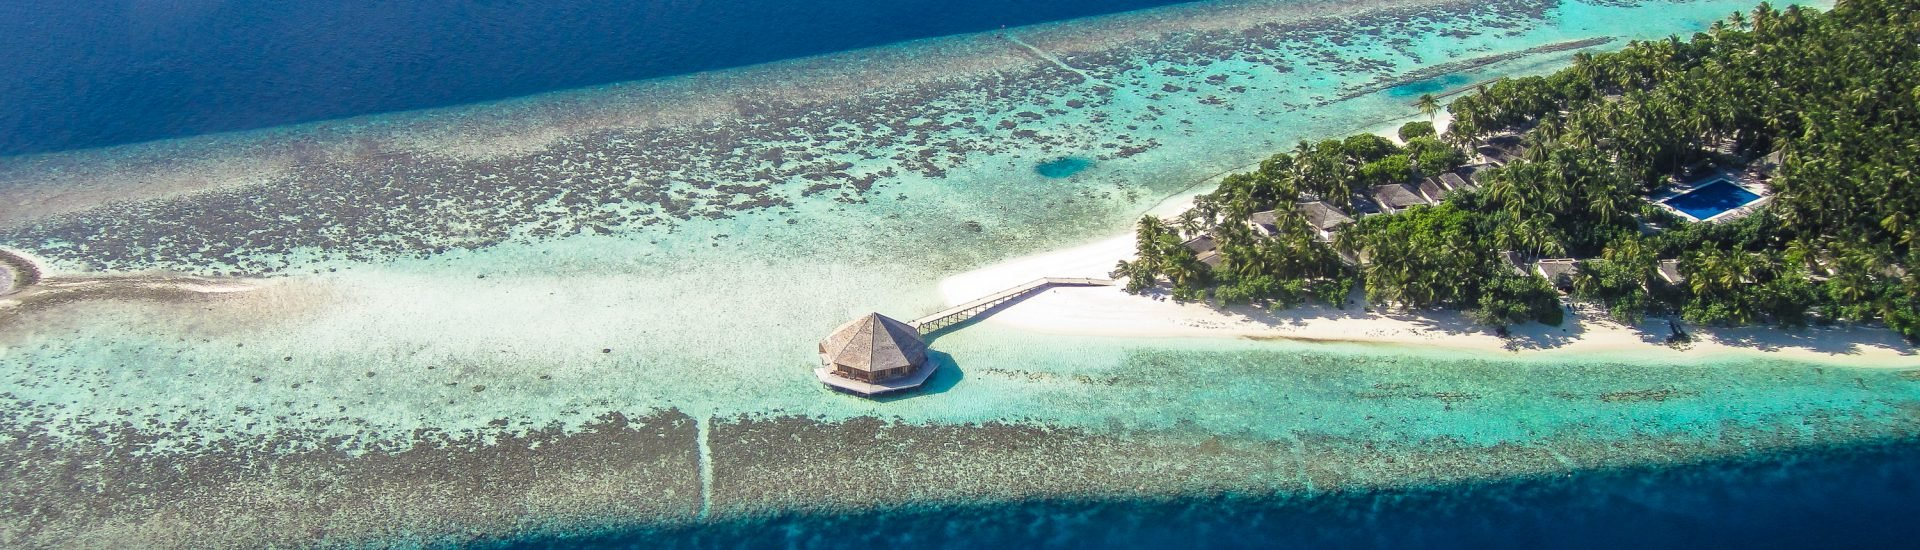 Maldives Resorts All Inclusive flights